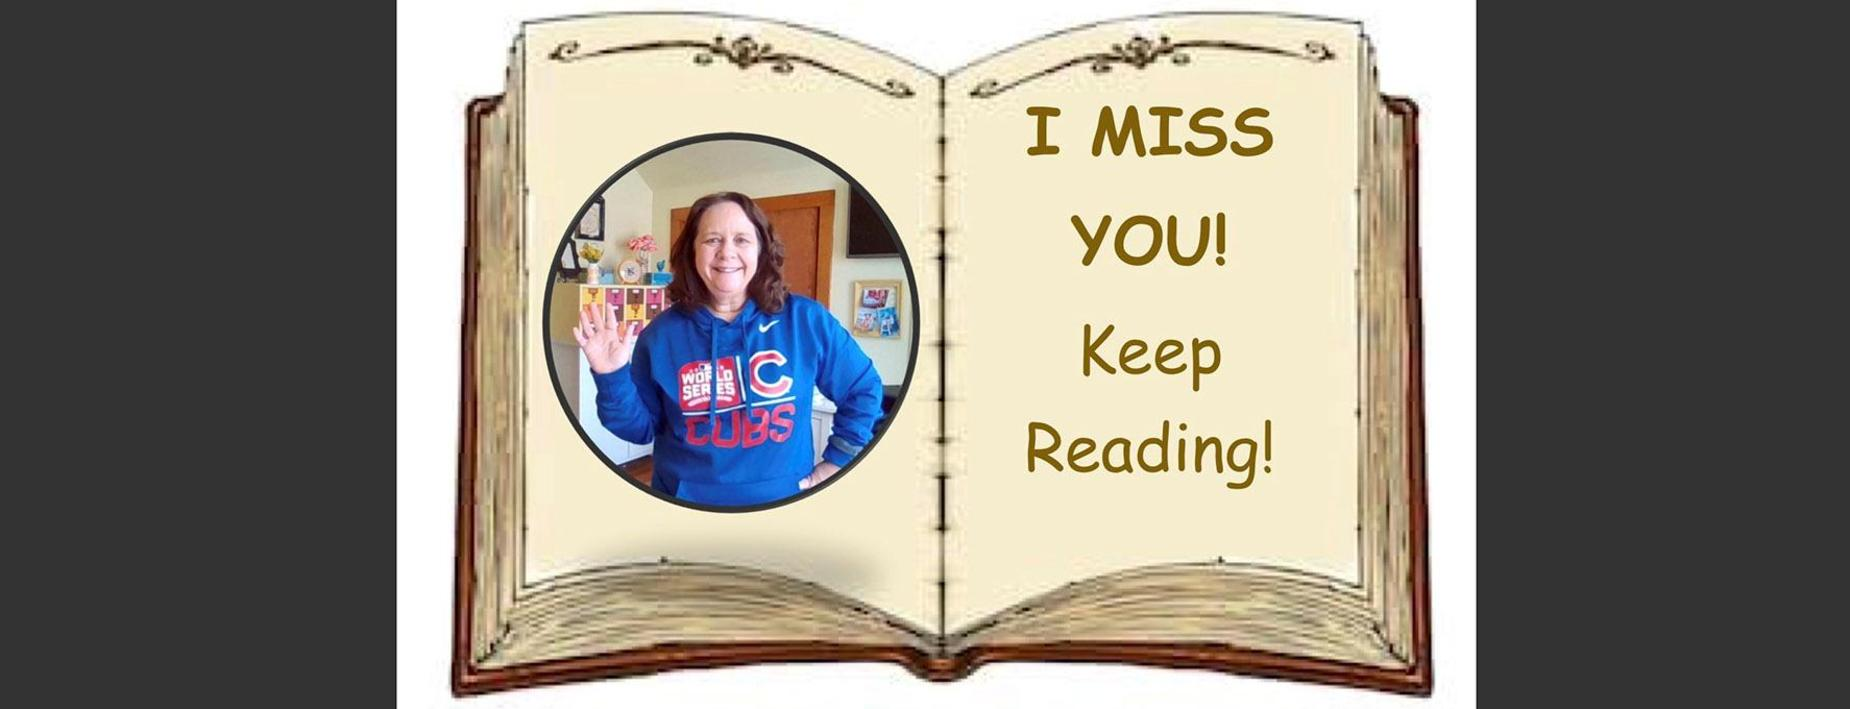 I miss you keep reading!